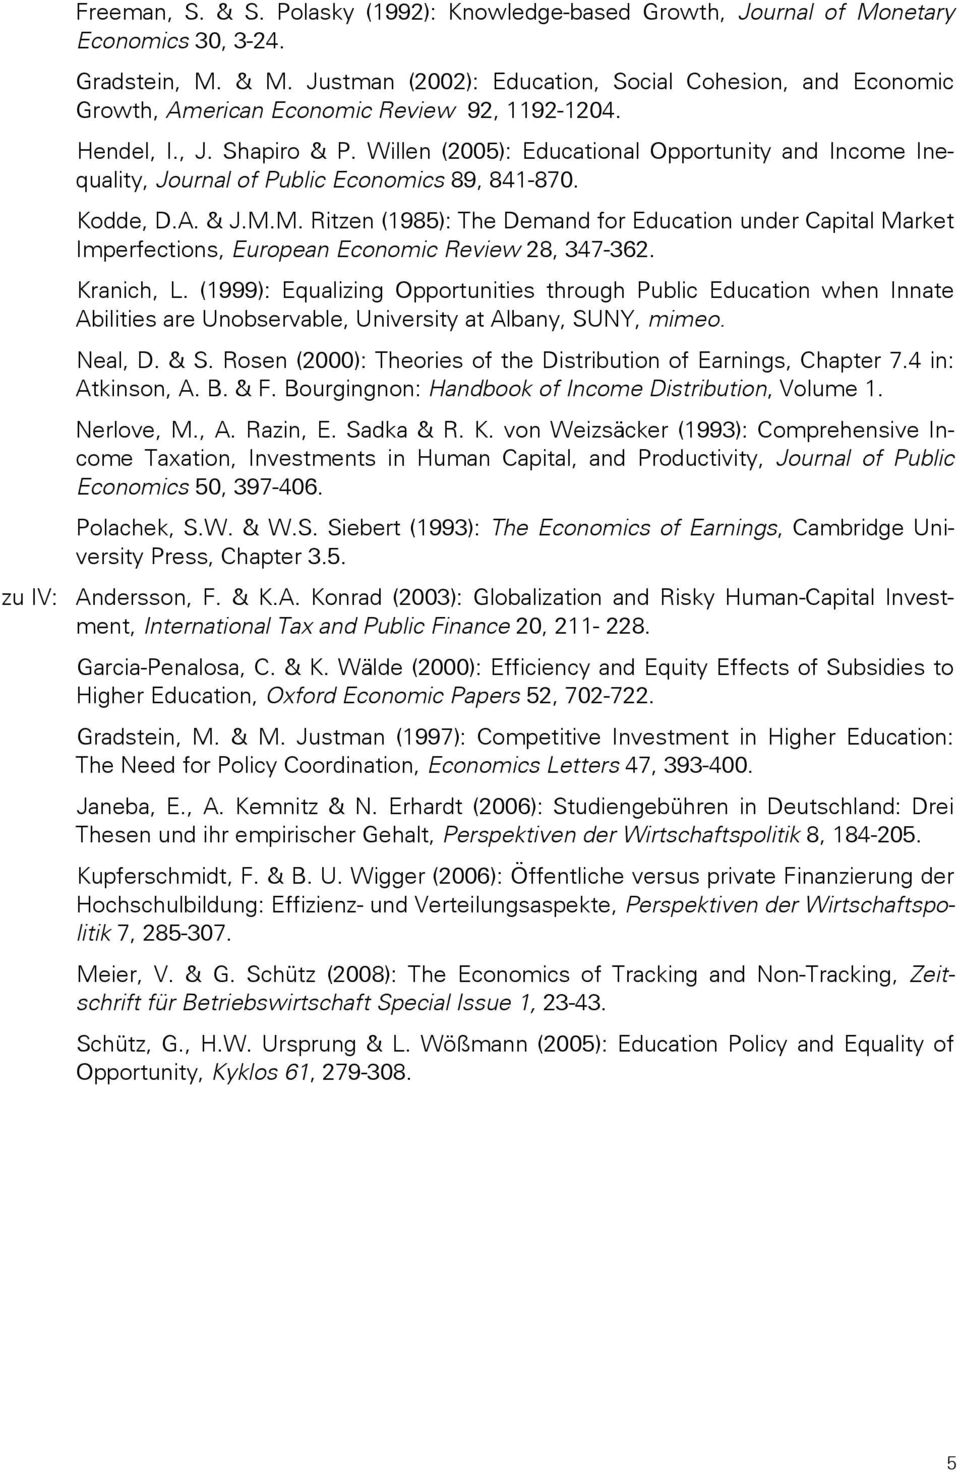 Willen (2005): Educational Opportunity and Income Inequality, Journal of Public Economics 89, 841-870. Kodde, D.A. & J.M.